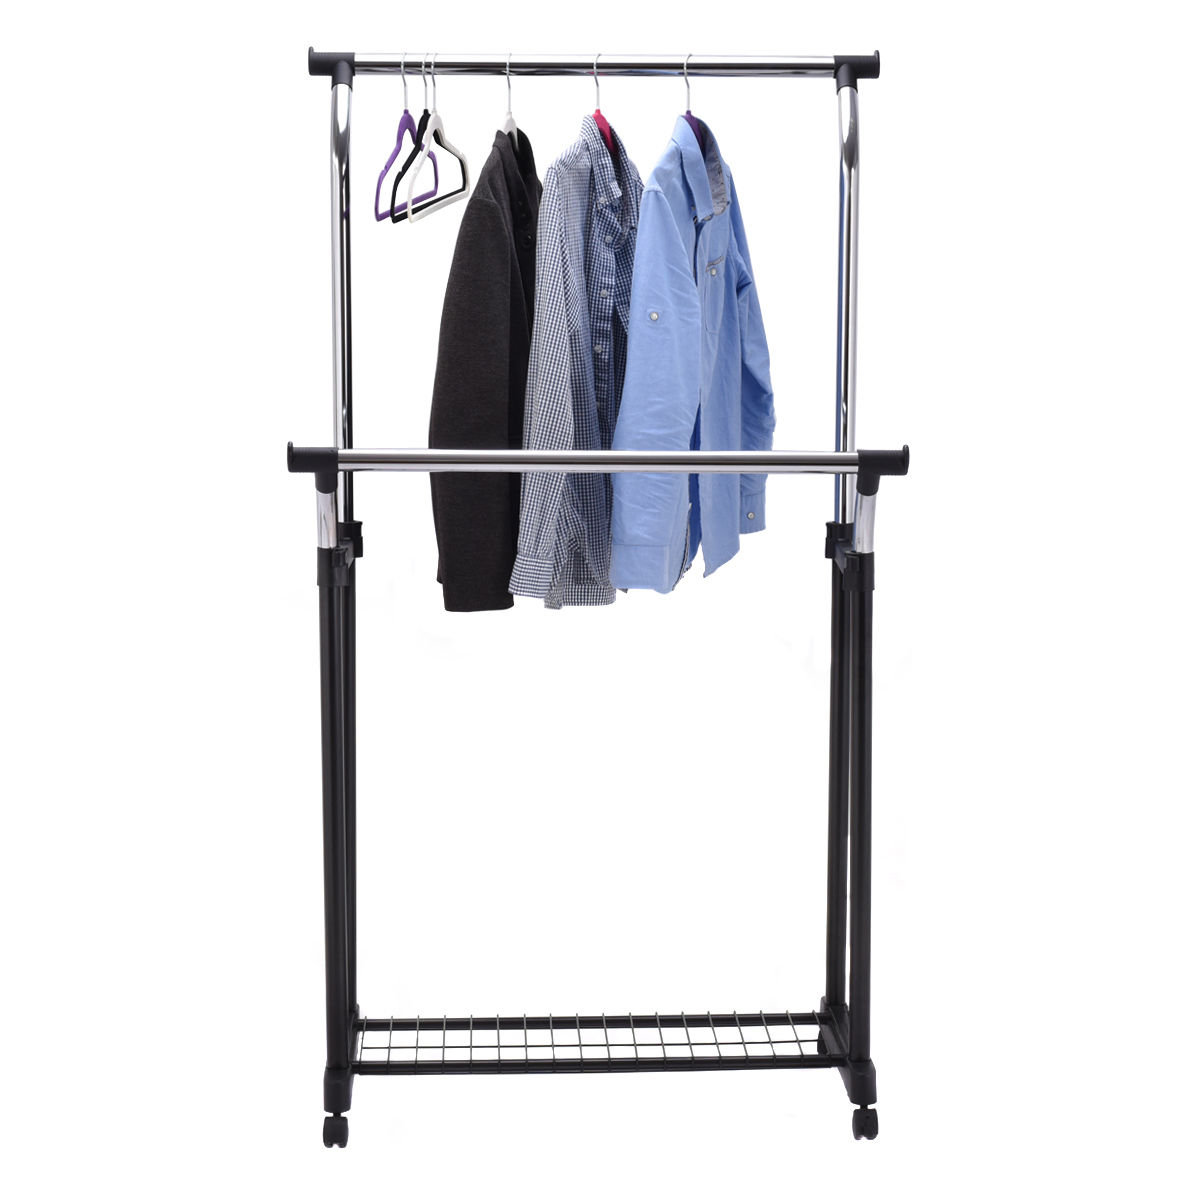 Charmant Goplus Double Rail Adjustable Garment Rack Portable Rolling Multifunctional  Laundry Drying Clothes Hanger With Shoe Rack HW53833 In Drying Racks U0026 Nets  From ...